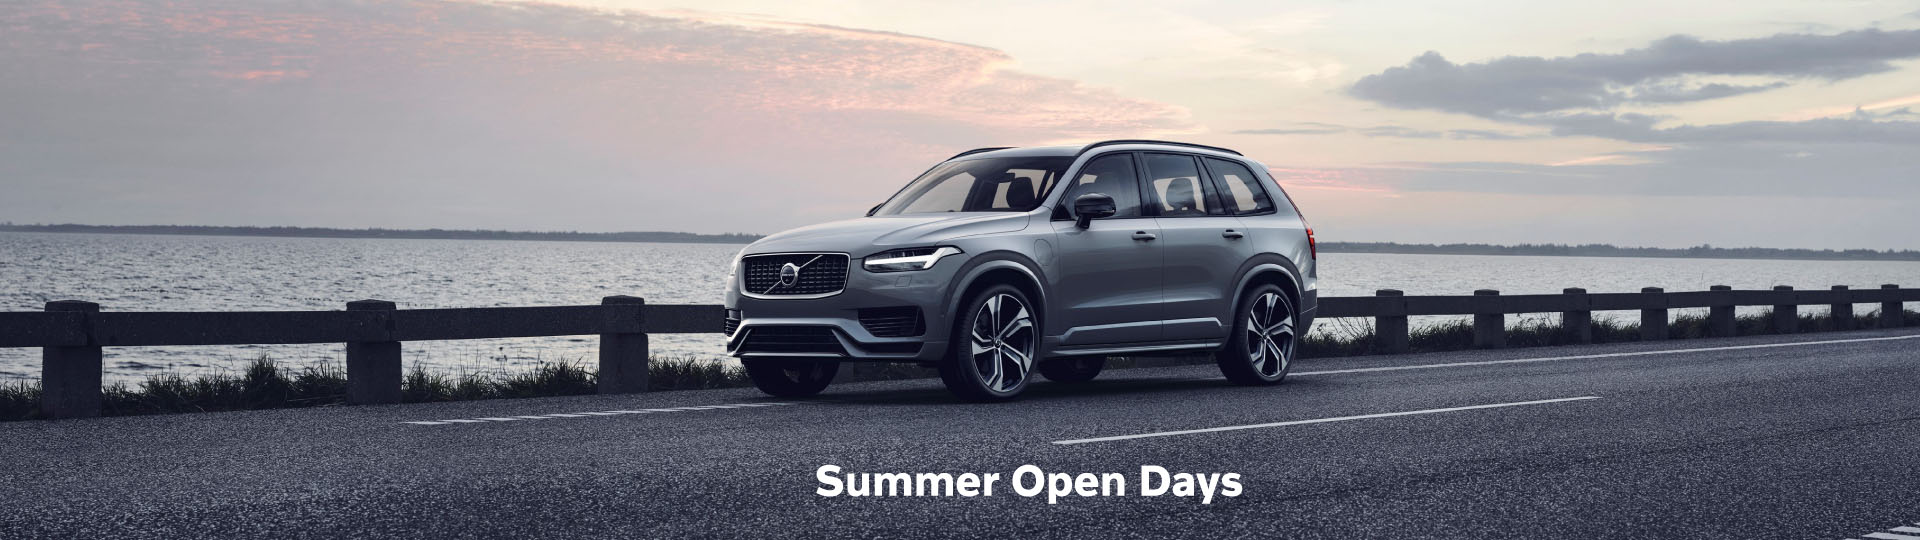 Weekend alături de Premium Nordic Cars – Dealer Volvo Iași